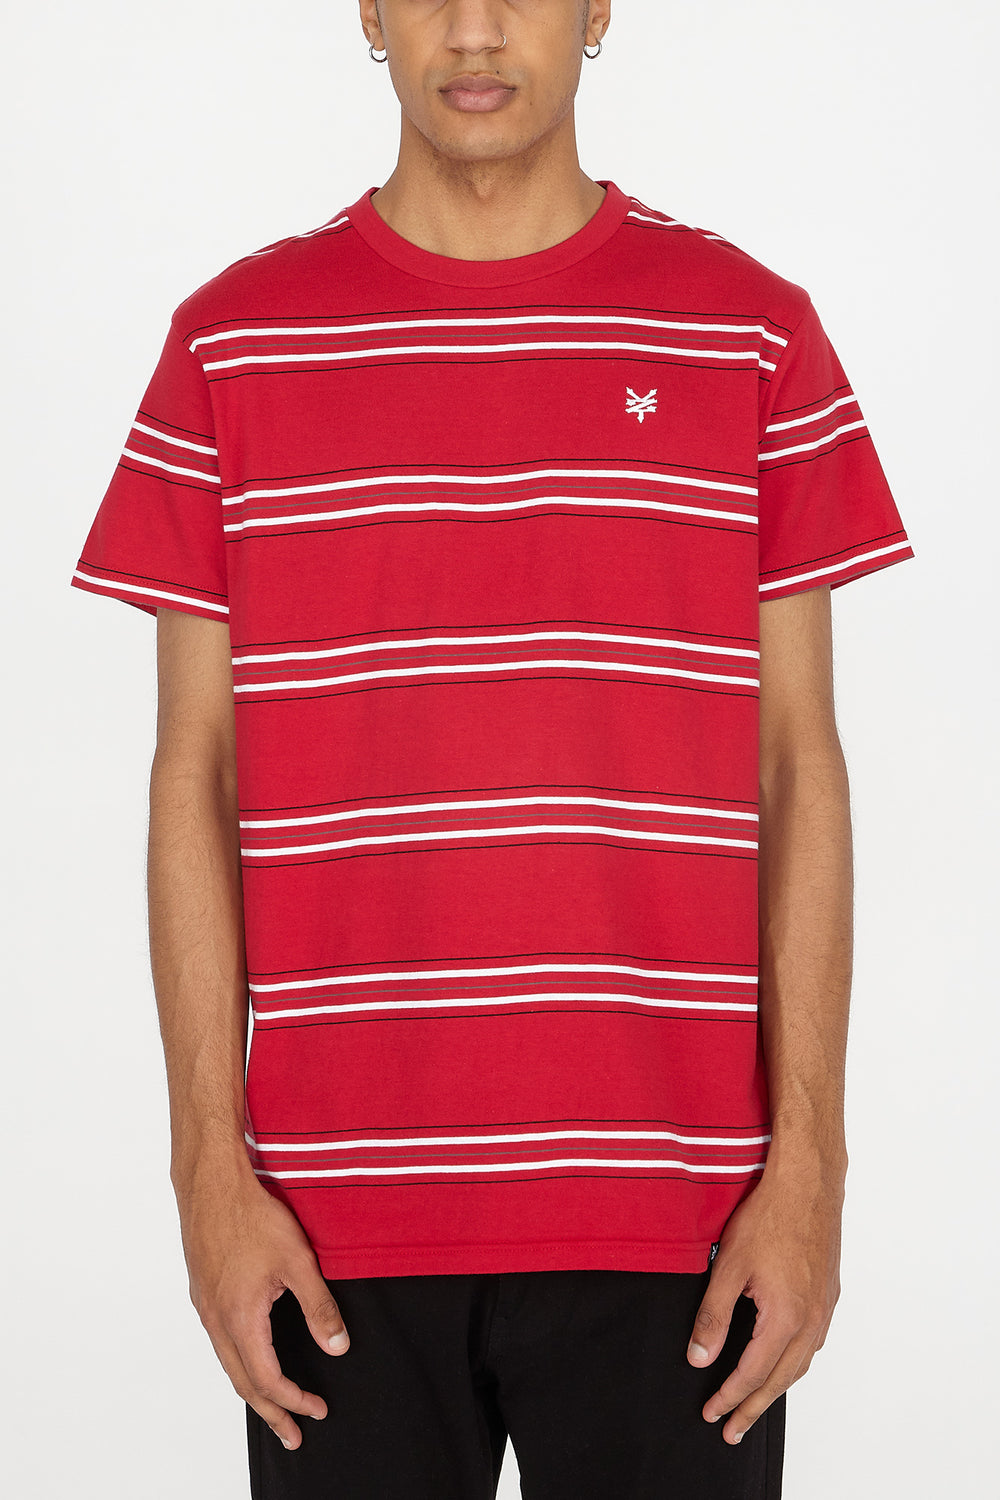 Zoo York Mens Striped T-Shirt Red